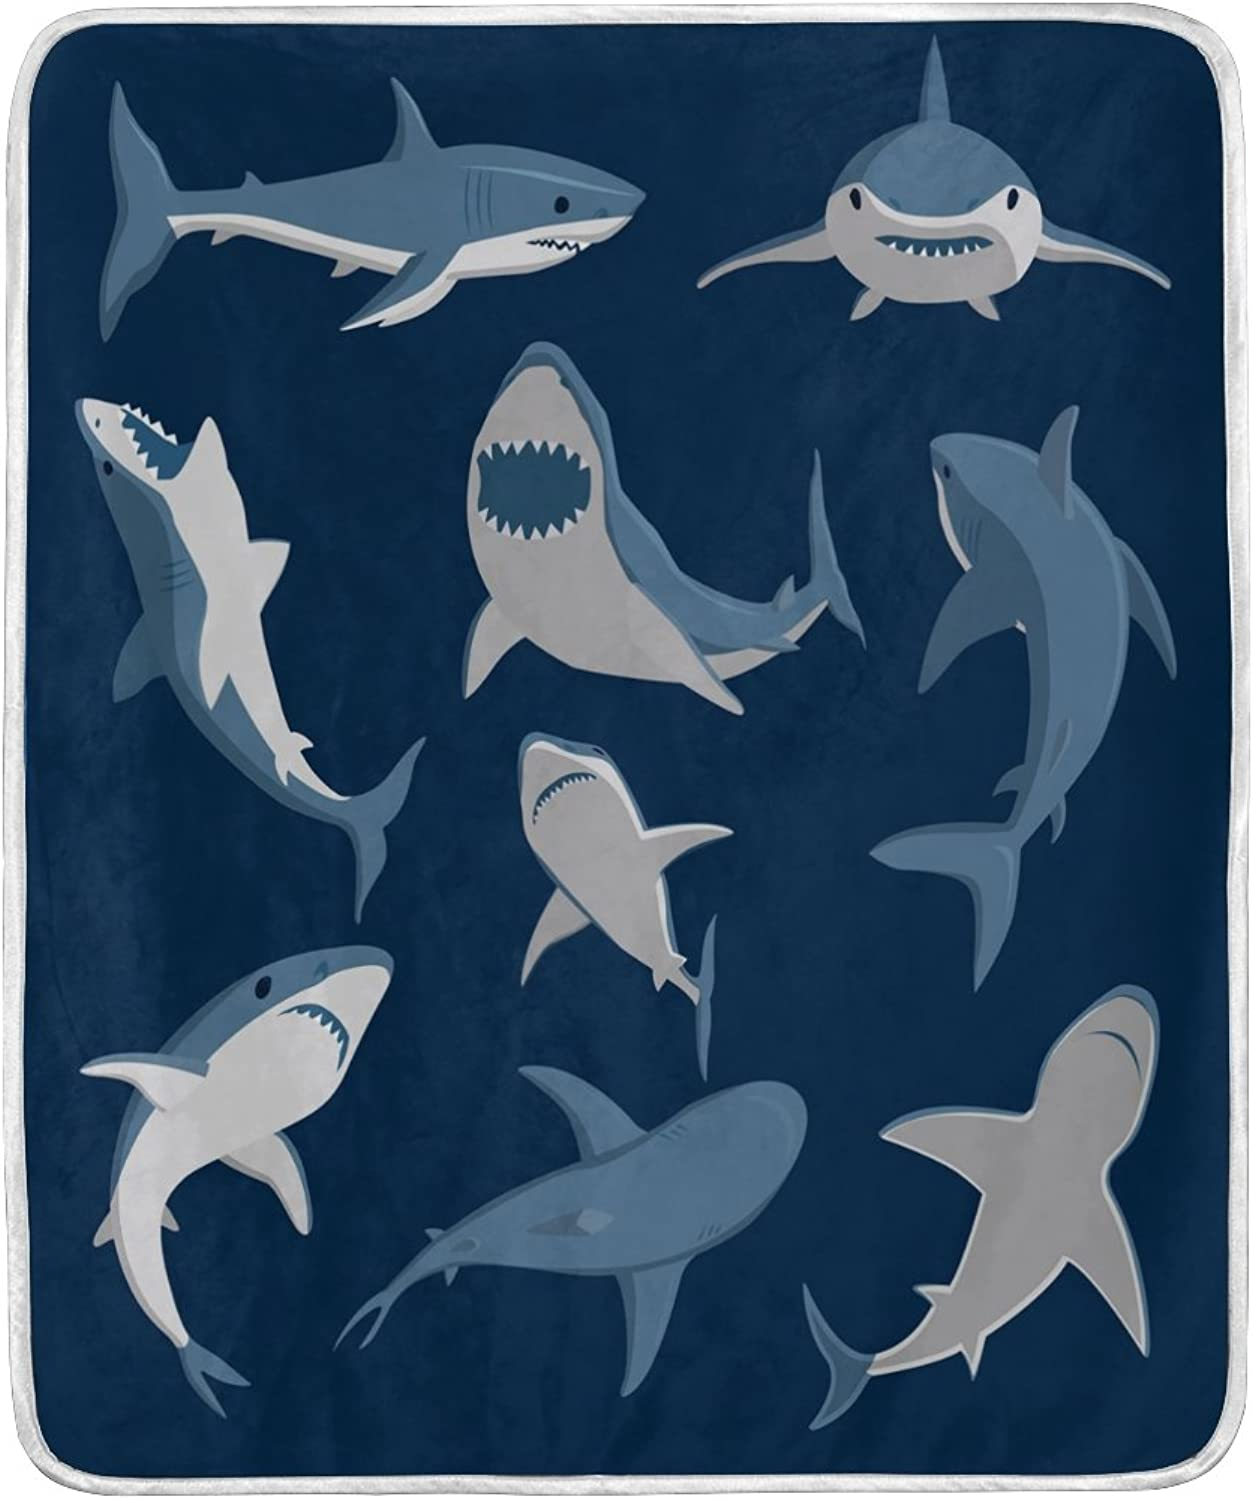 ALAZA Home Decor Cartoon Shark Fish bluee Blanket Soft Warm Blankets for Bed Couch Sofa Lightweight Travelling Camping 60 x 50 inch Throw Size for Kids Boys Women